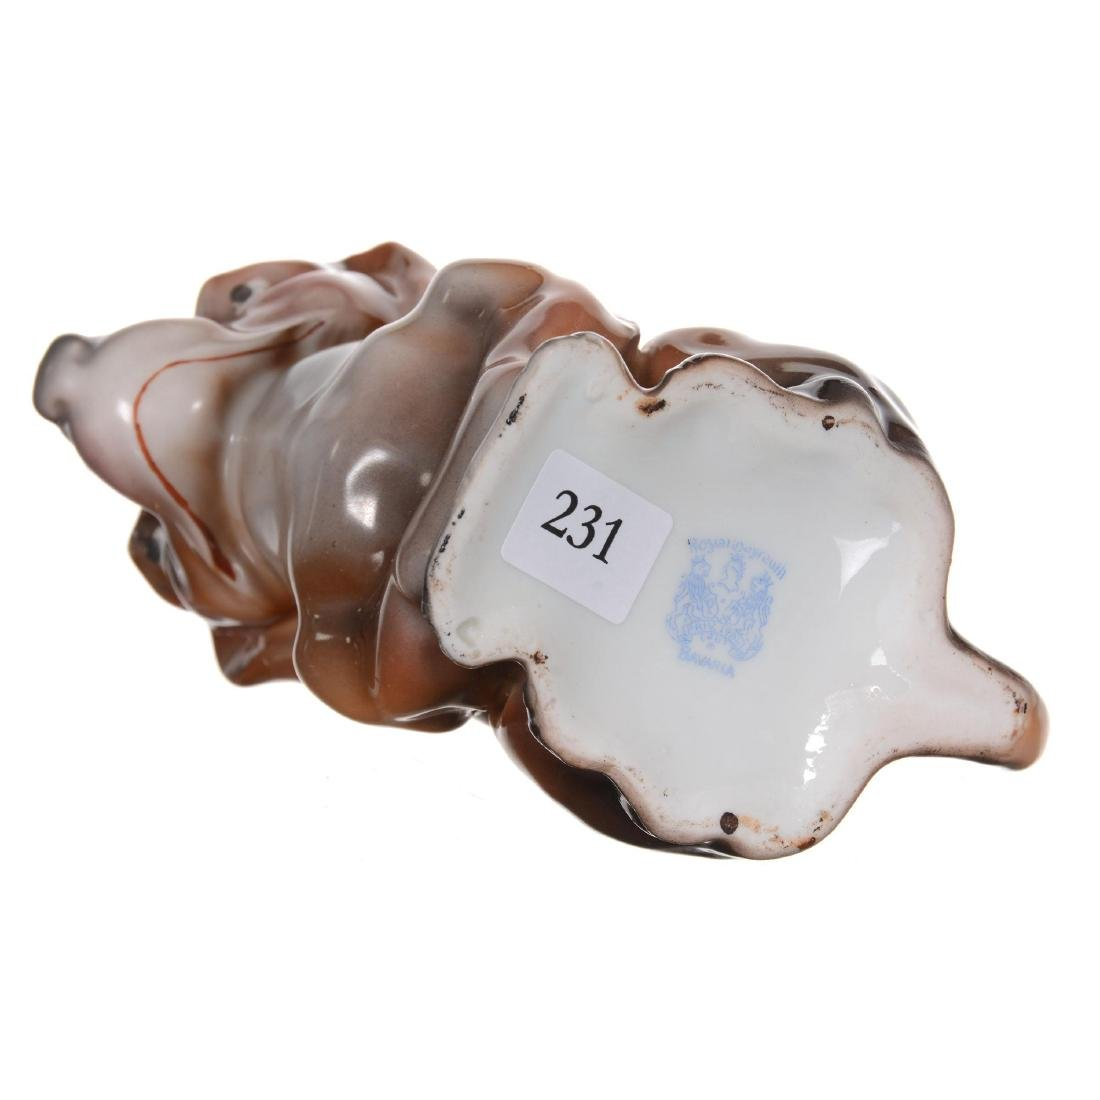 Royal Bayreuth Dachshund Milk Pitcher - 3